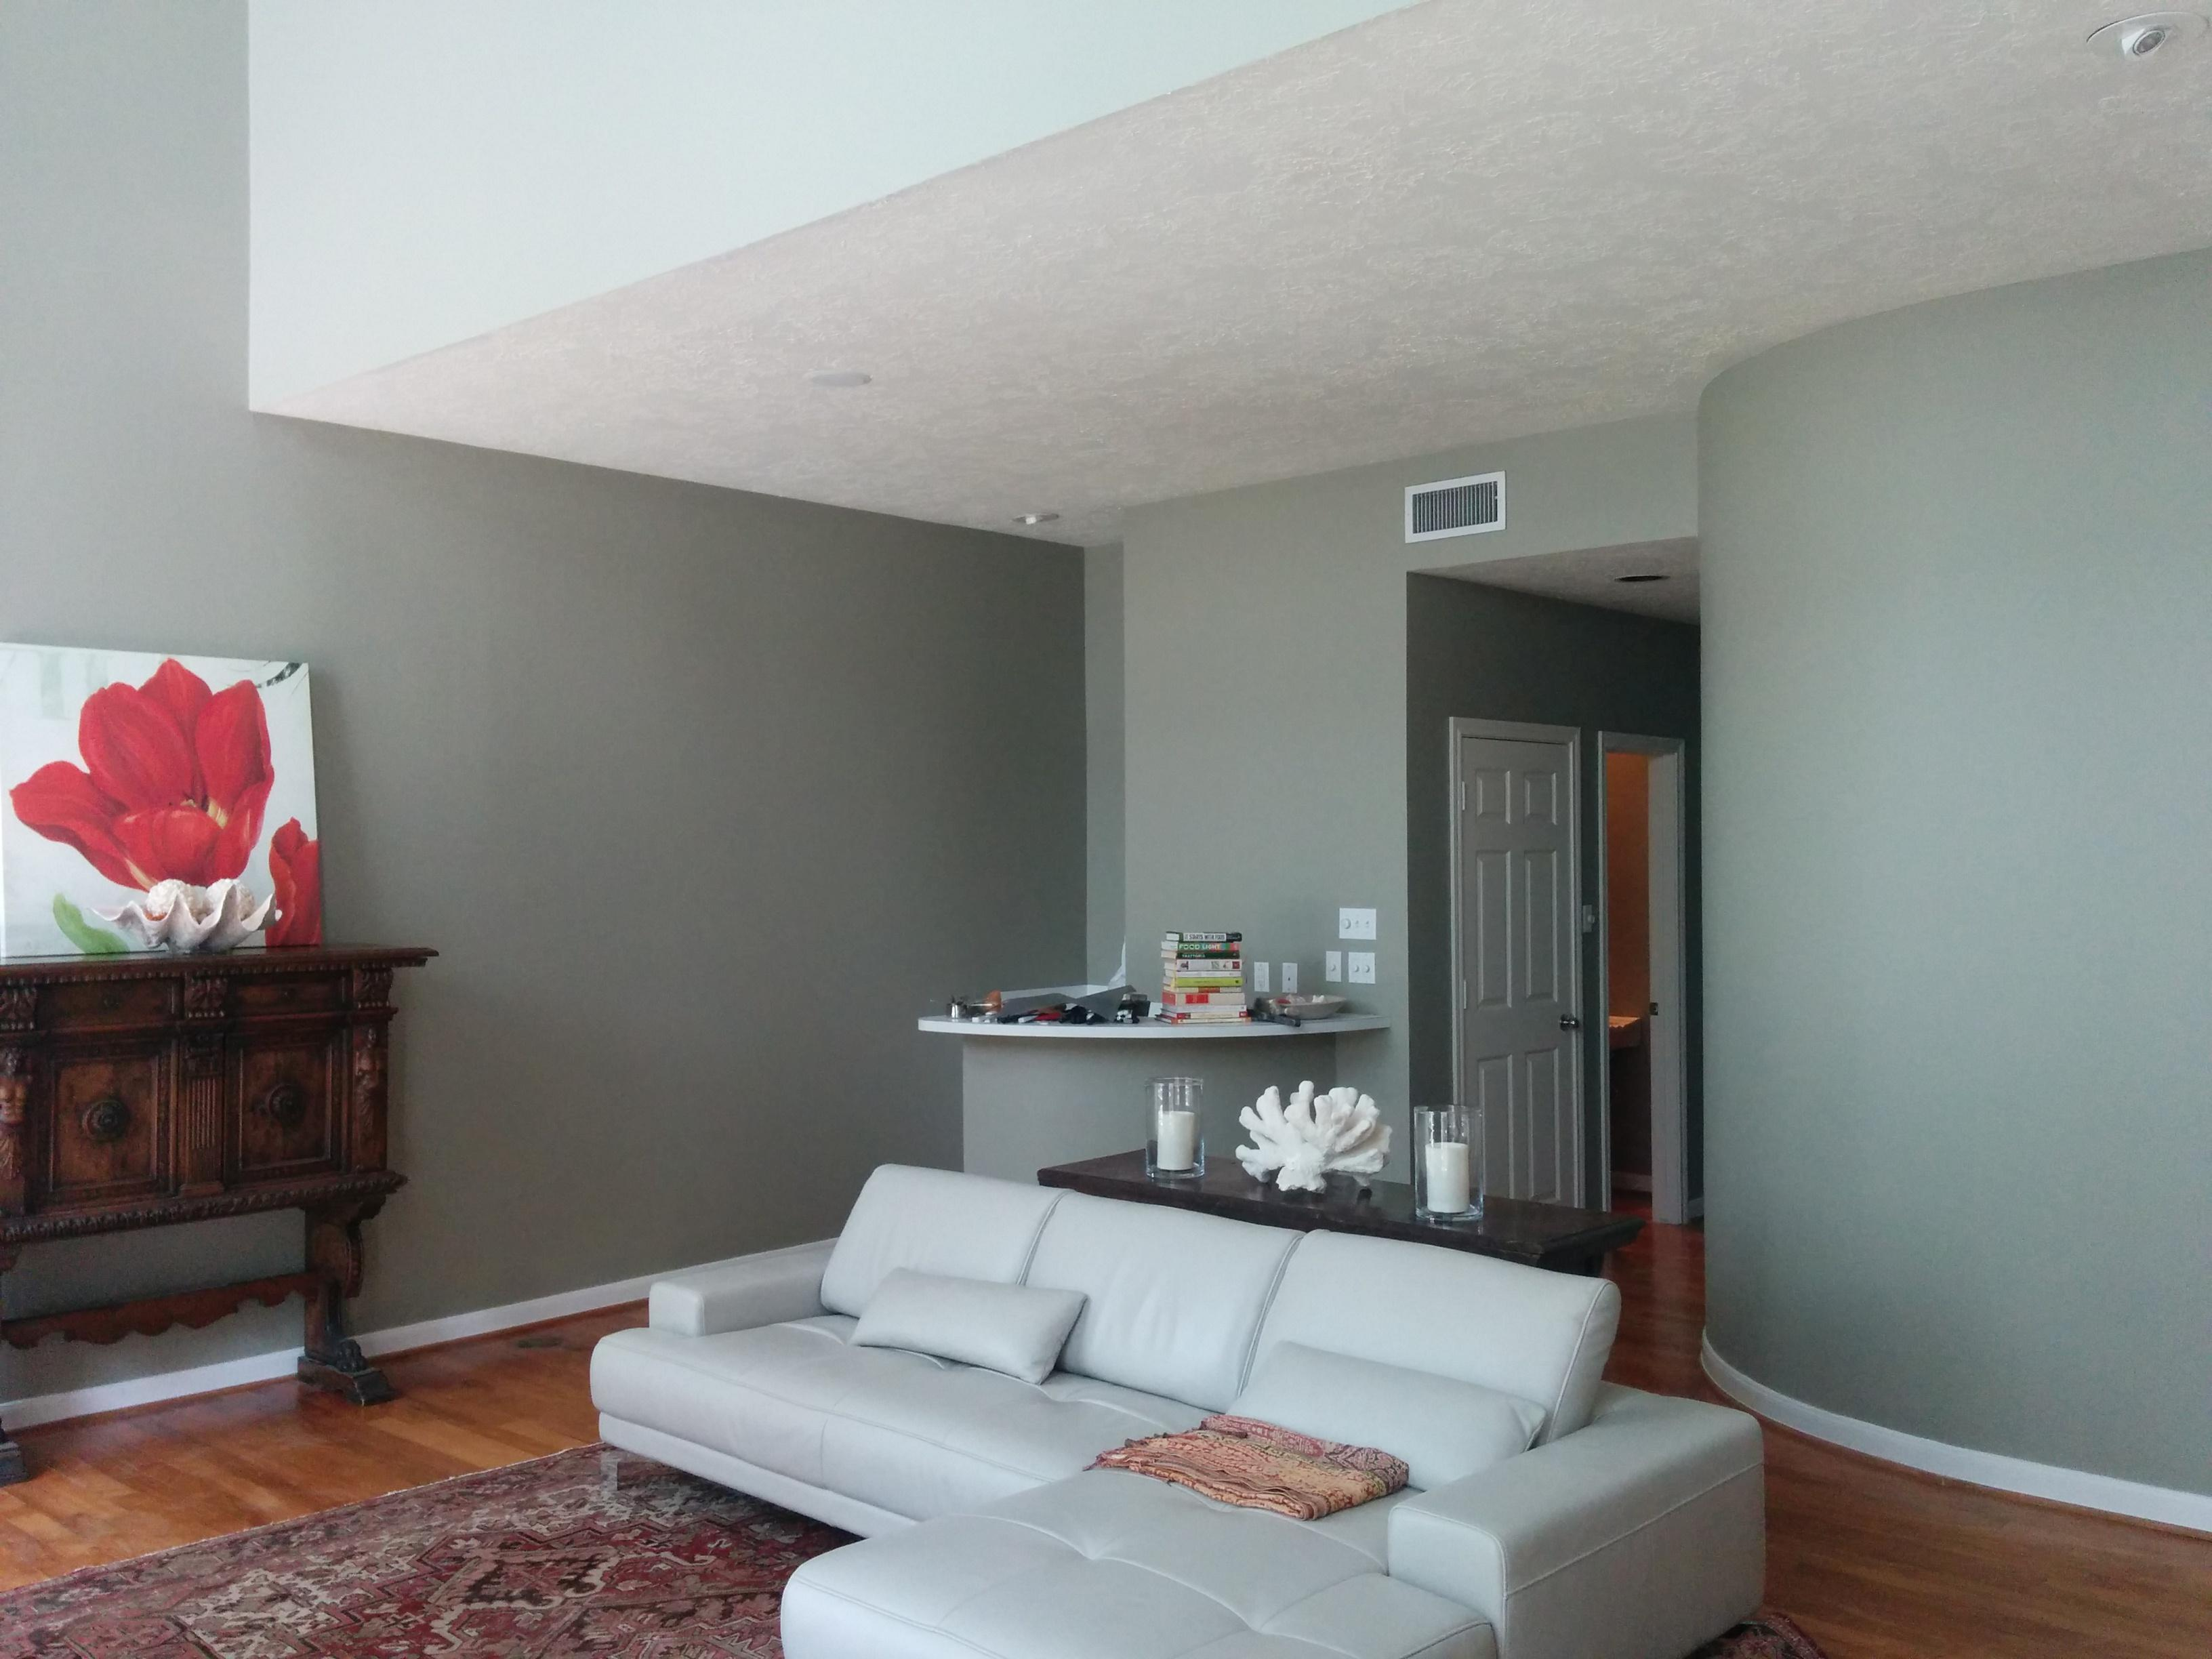 Wingo S Affordable Painting In Houston Tx 77096